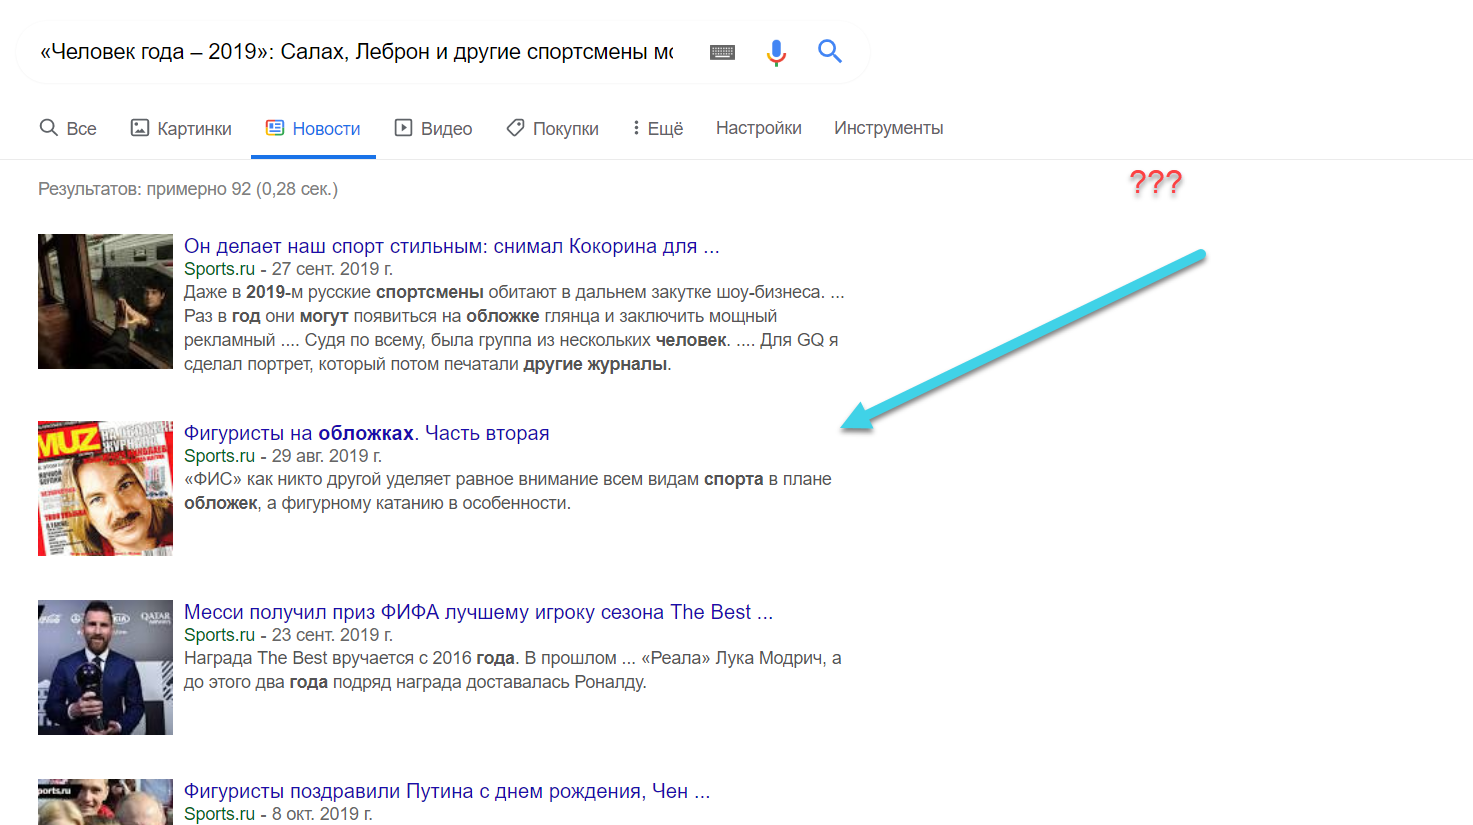 Can't find my articles in google news   Google Publisher Center ...